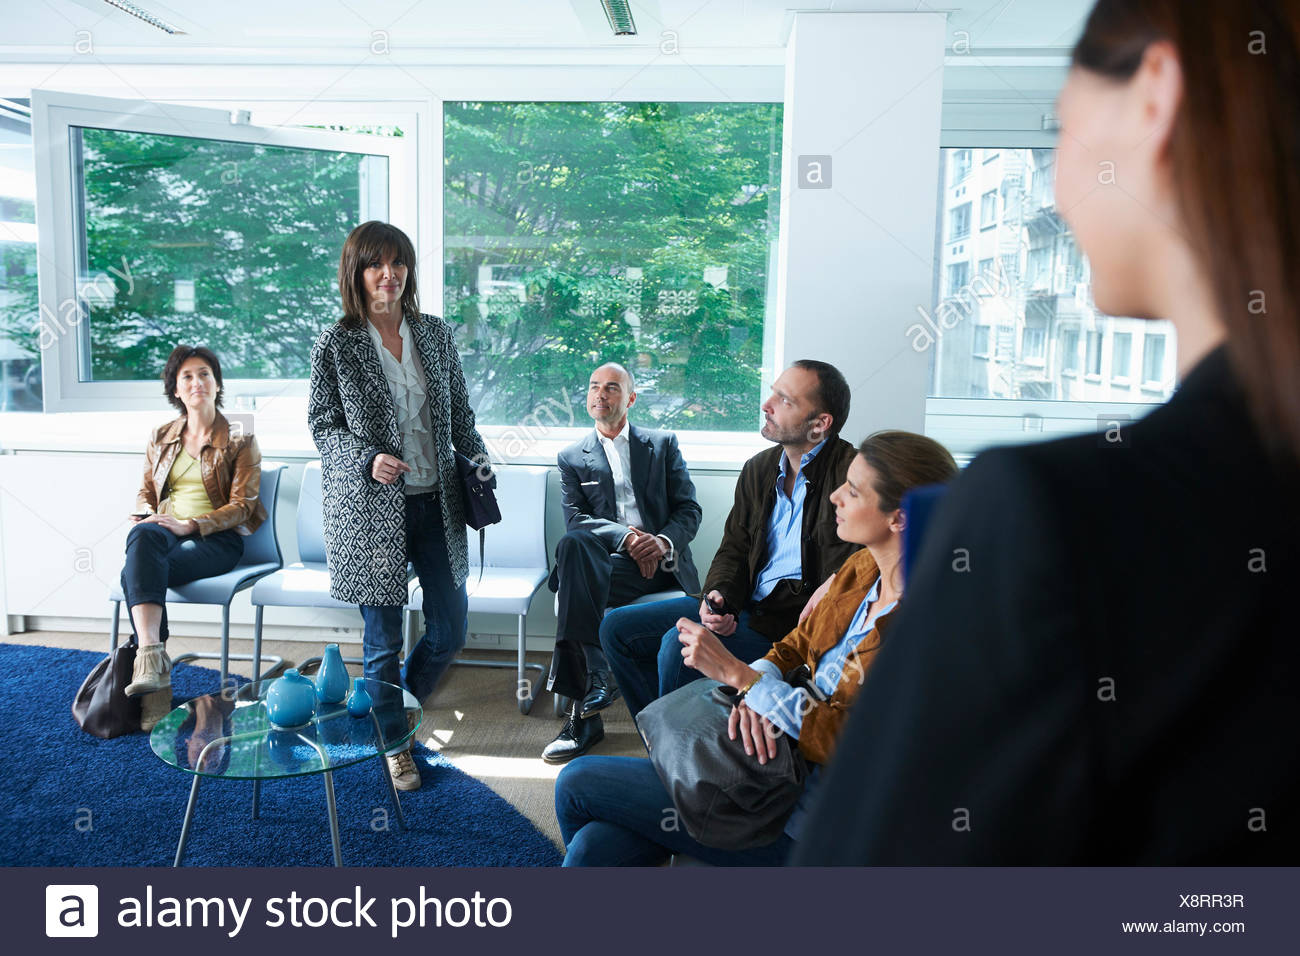 Woman being called for interview - Stock Image